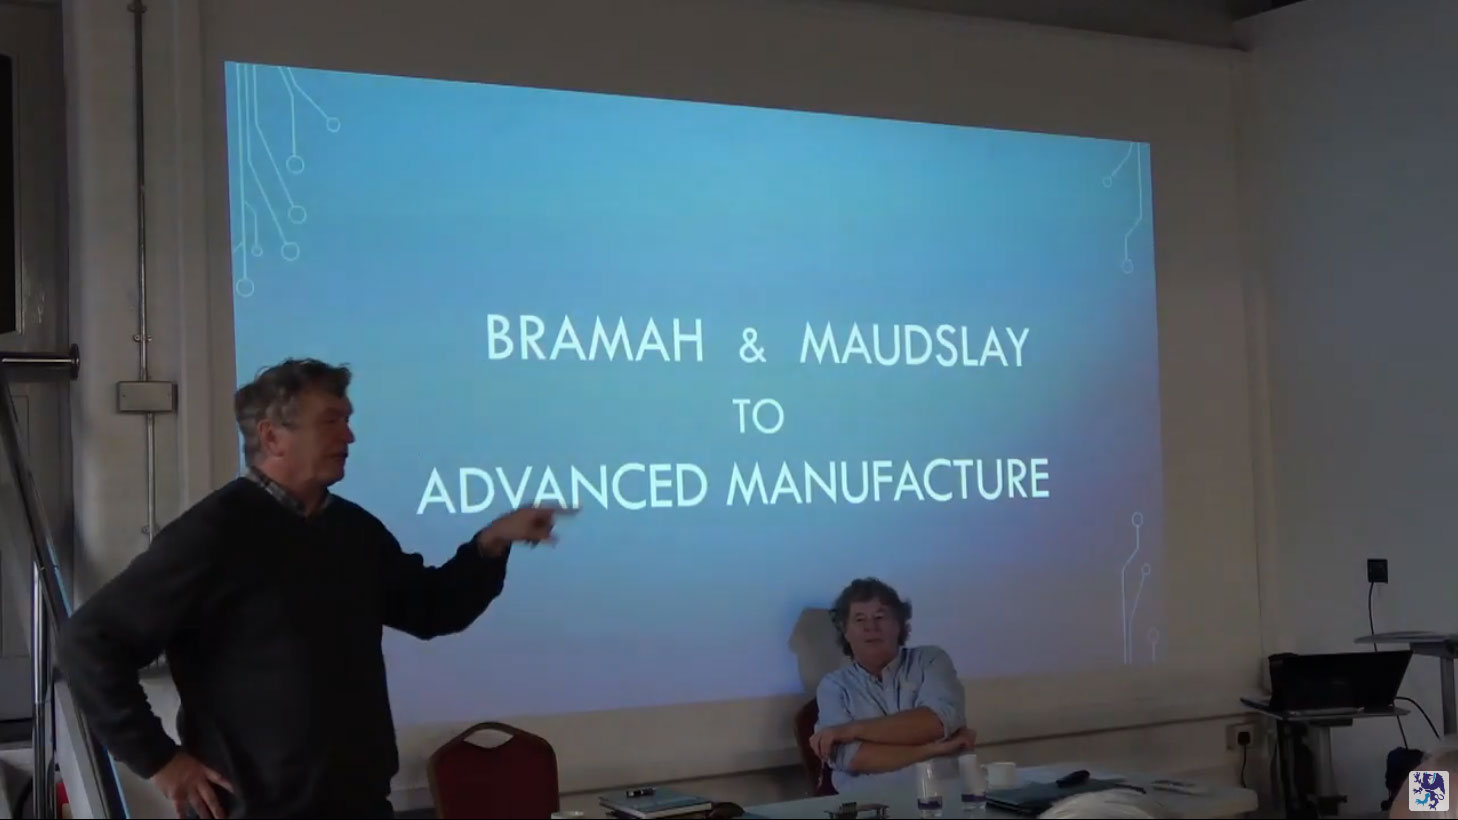 Bramah & Maudsley To Advanced Manufacturing (one of the last lectures before lockdown)